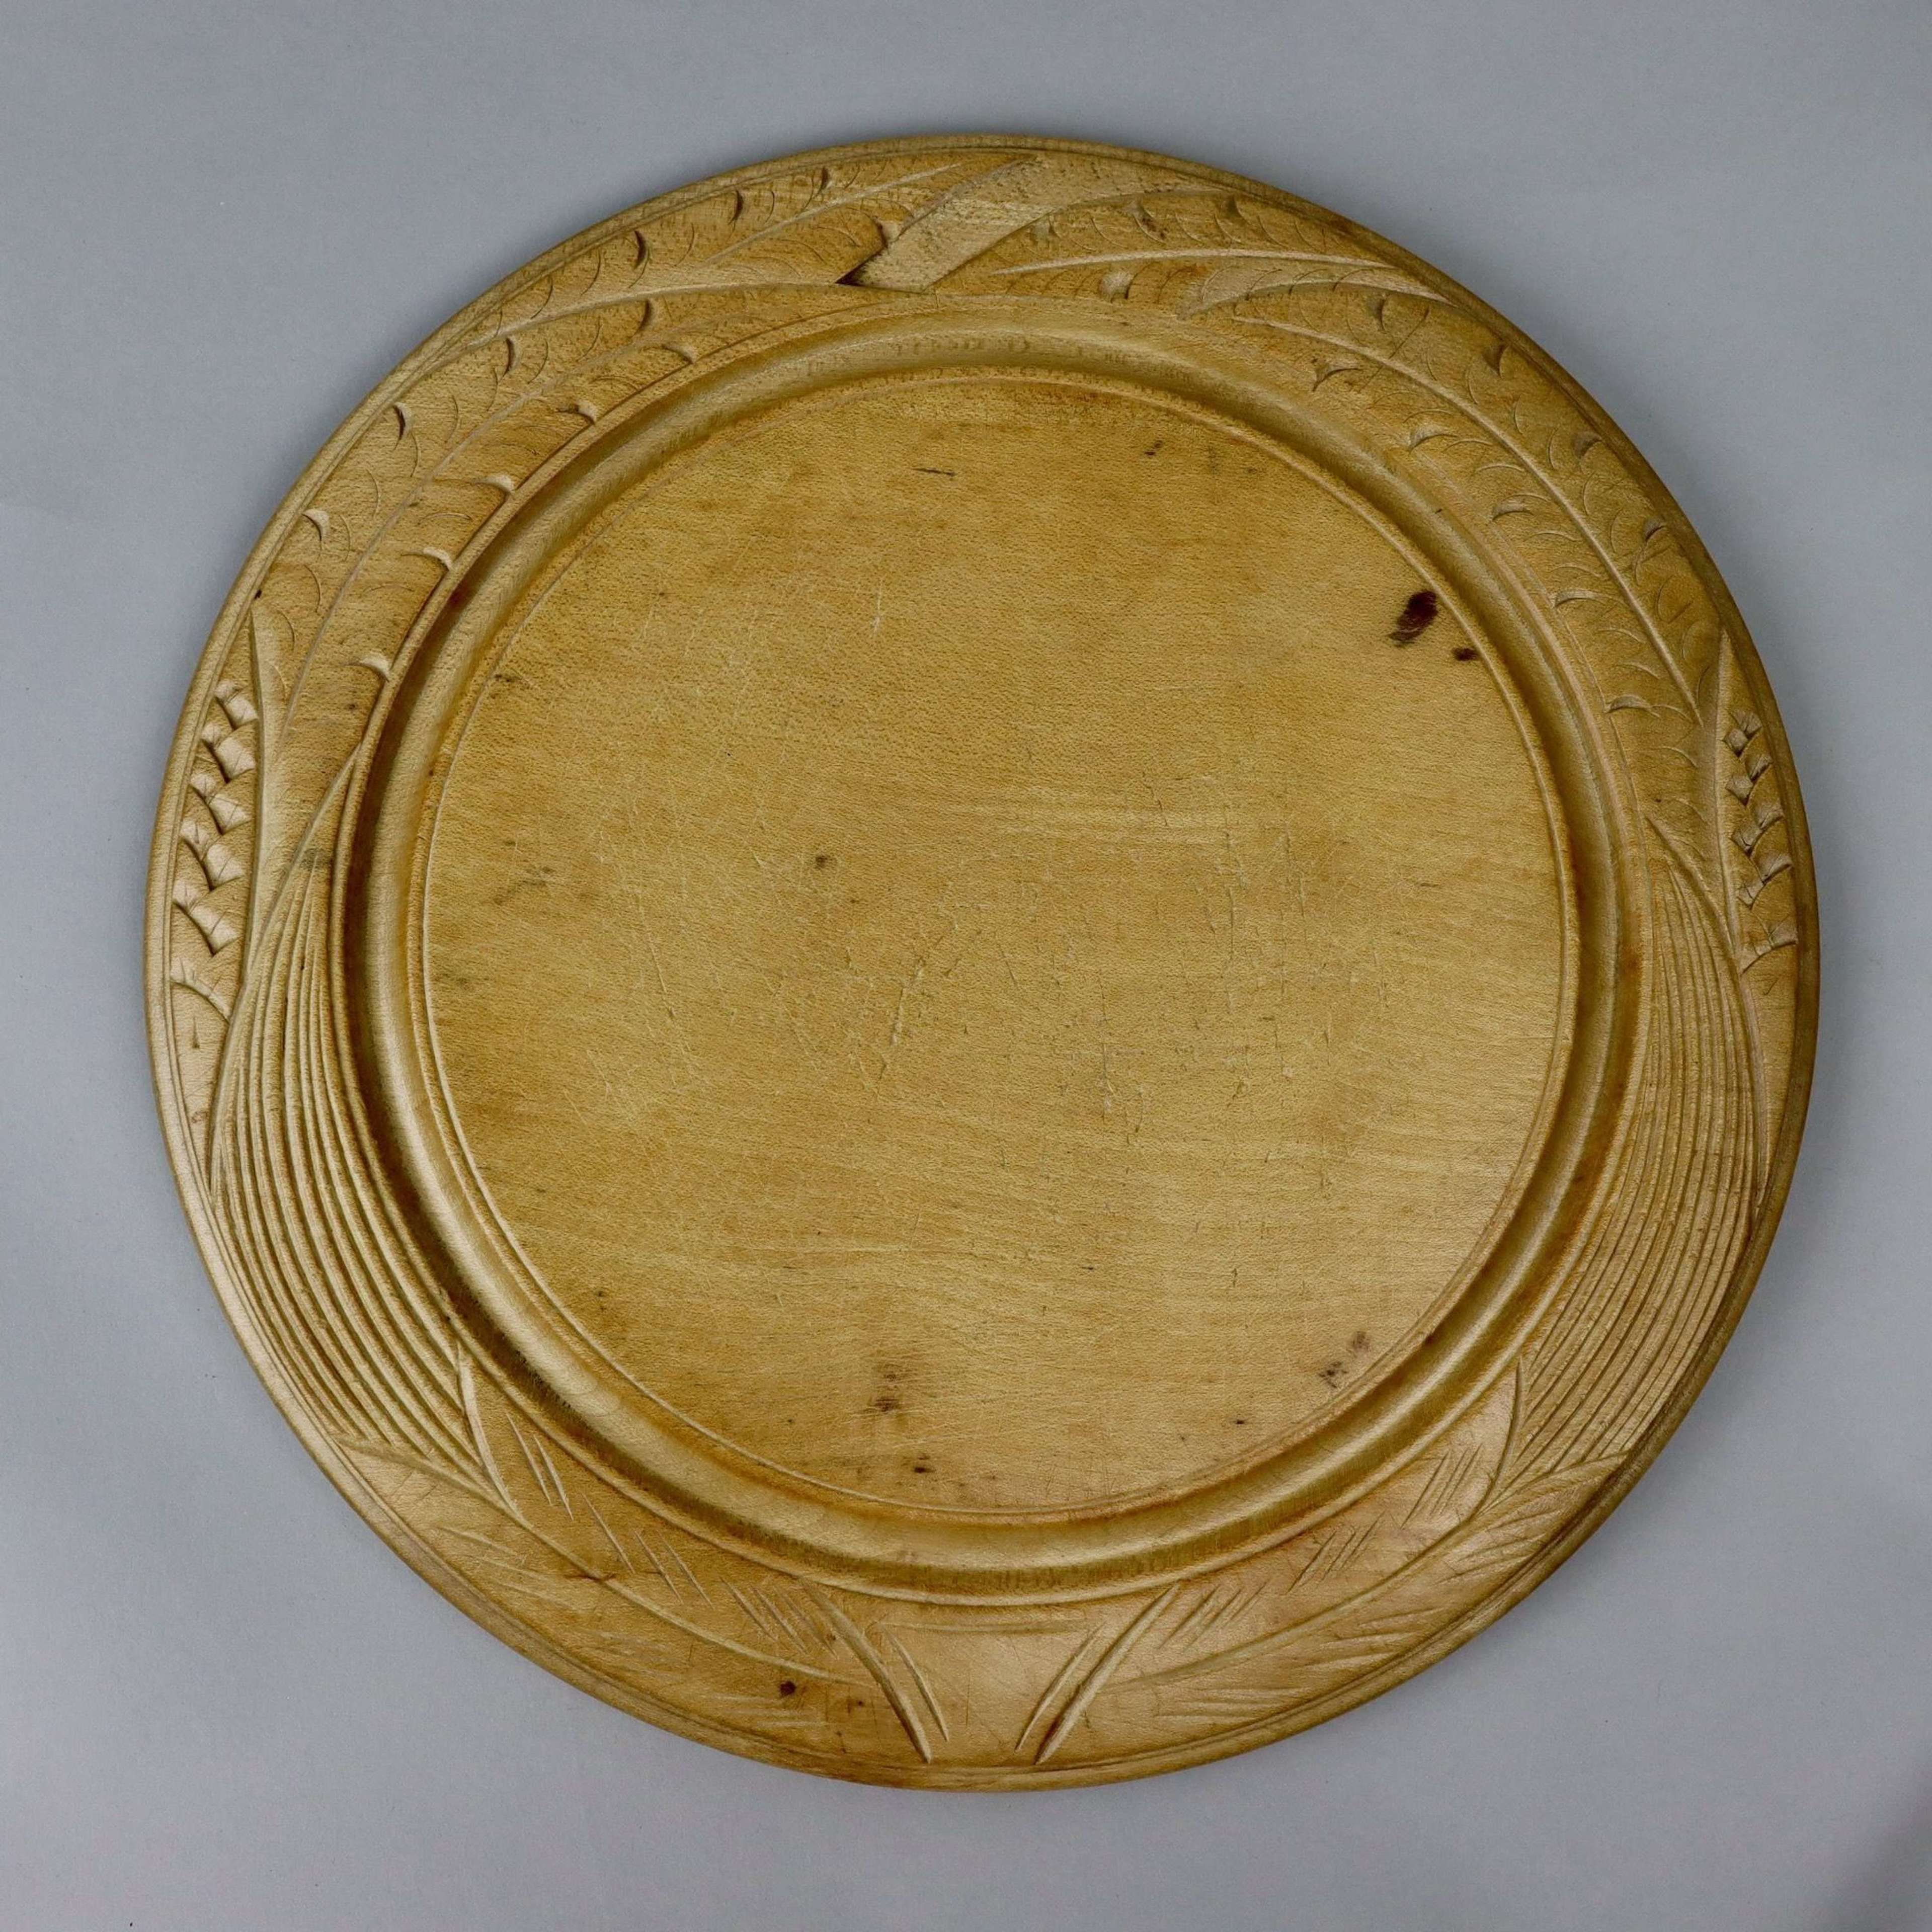 Breadboard carved with wheat